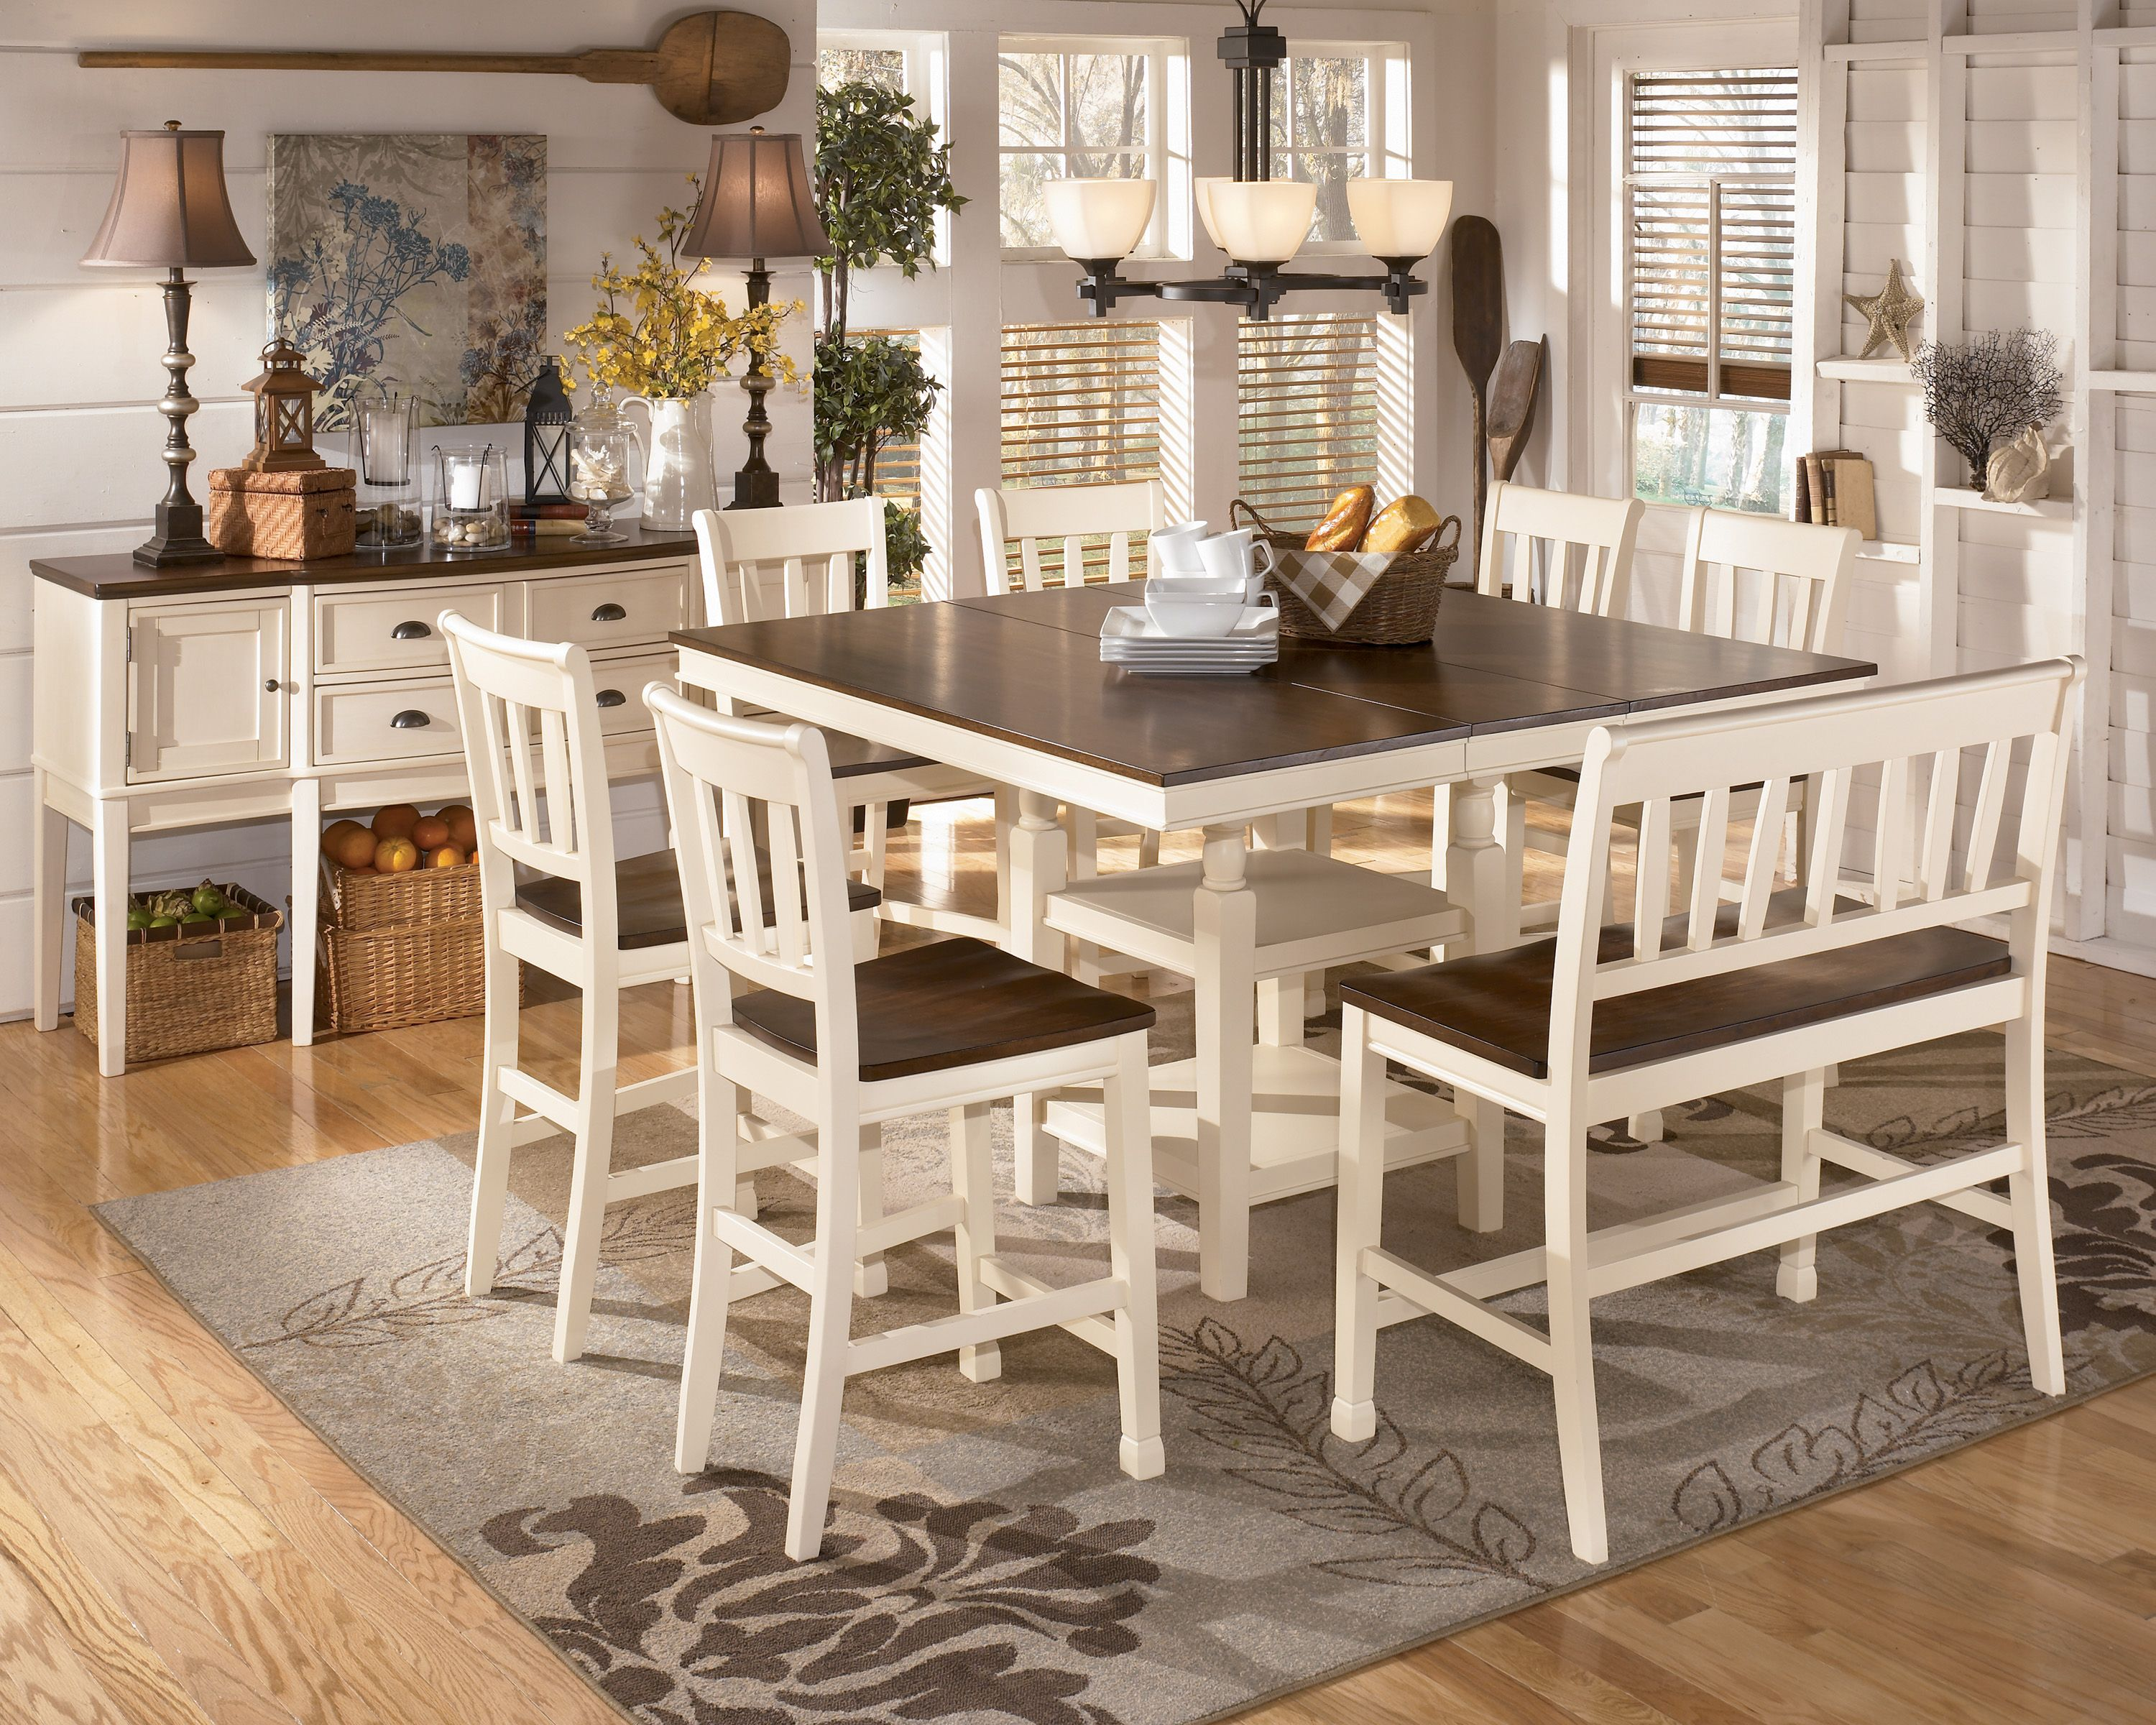 Marsilona Dining Room Table Counter Height Bar Stools Counter Height Table Dining Room Table